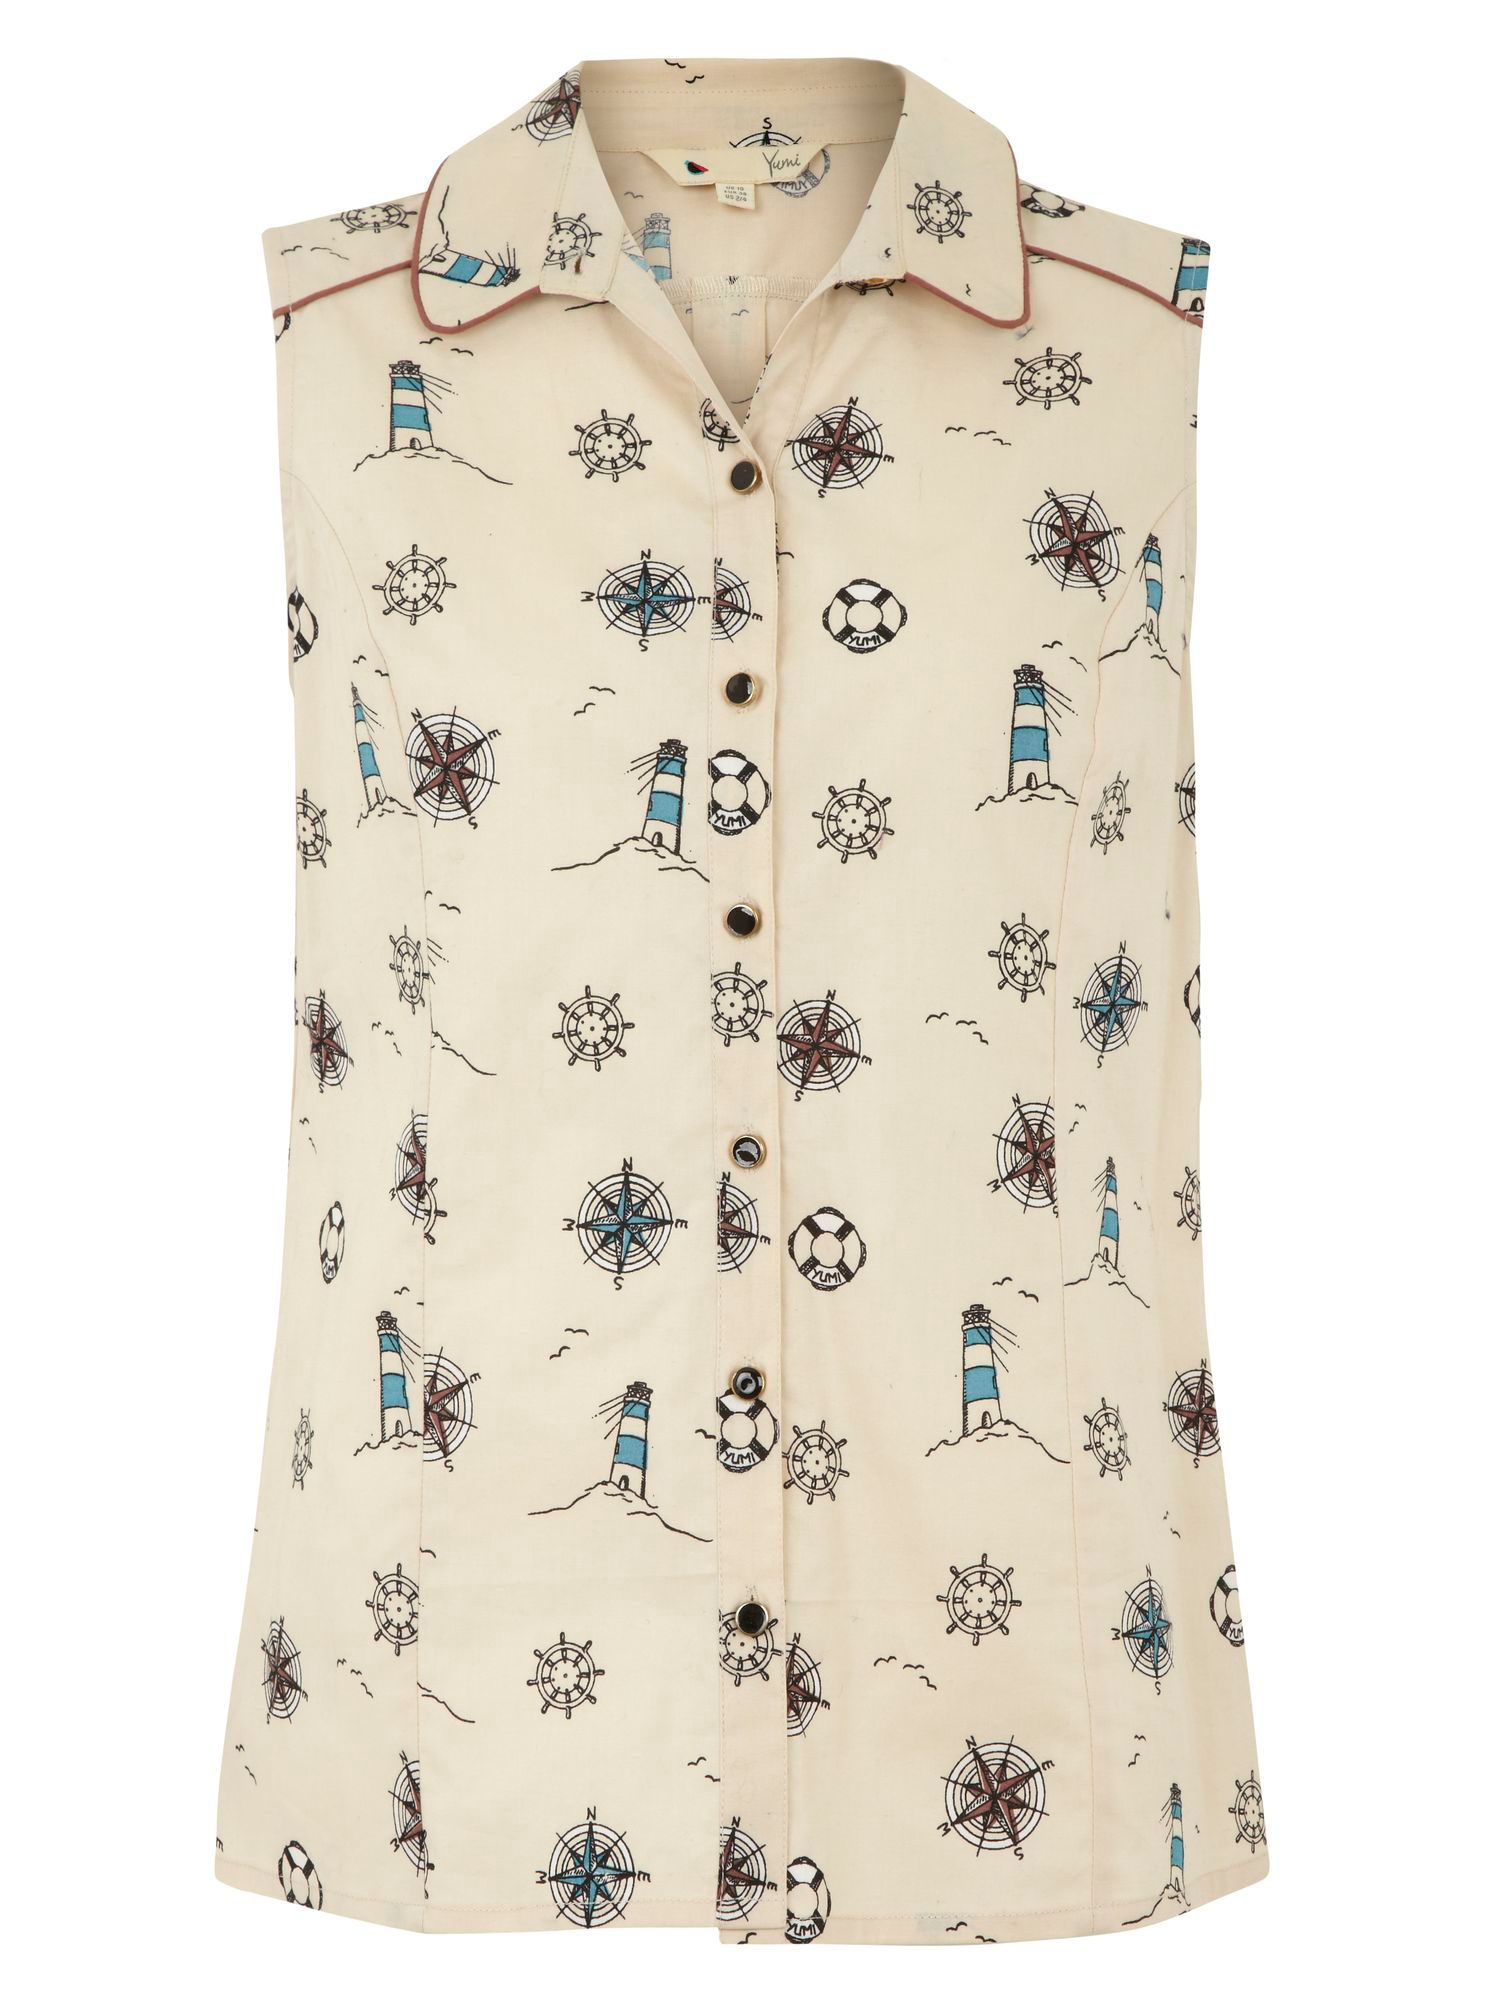 Lighthouse print shirt